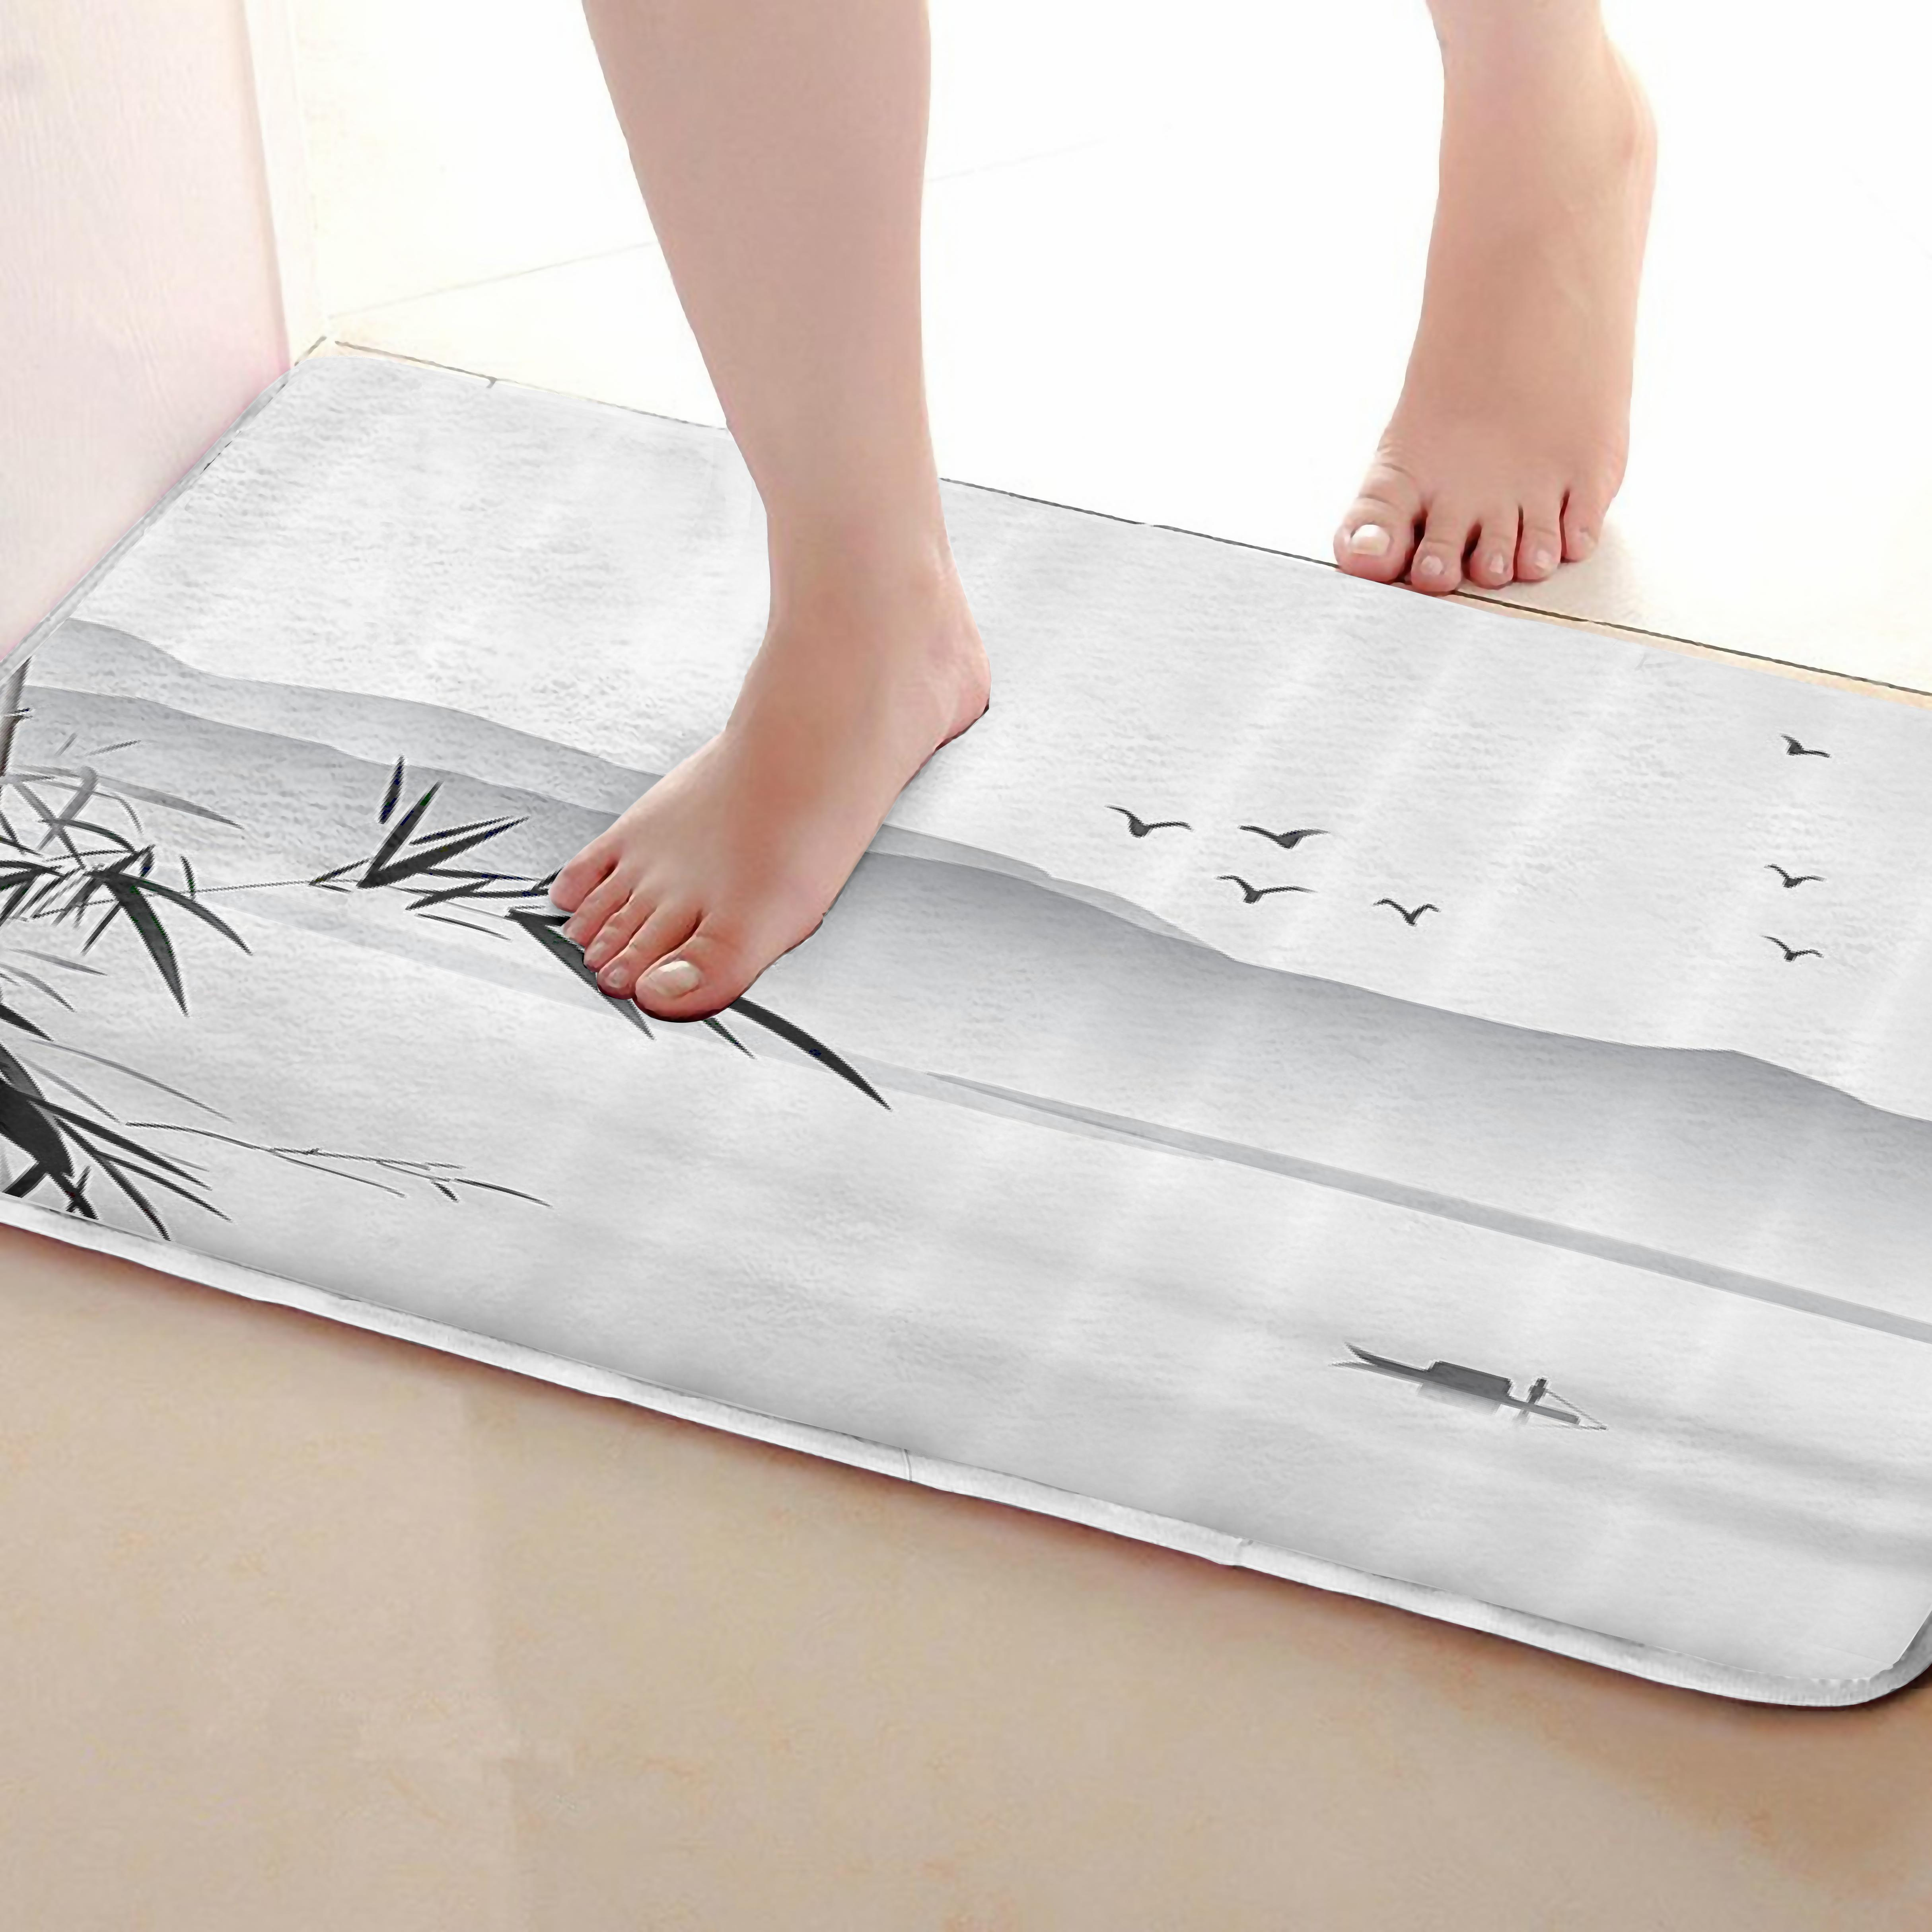 Lnk painting Style Bathroom Mat,Funny Anti skid Bath Mat,Shower Curtains Accessories,Matching Your Shower Curtain